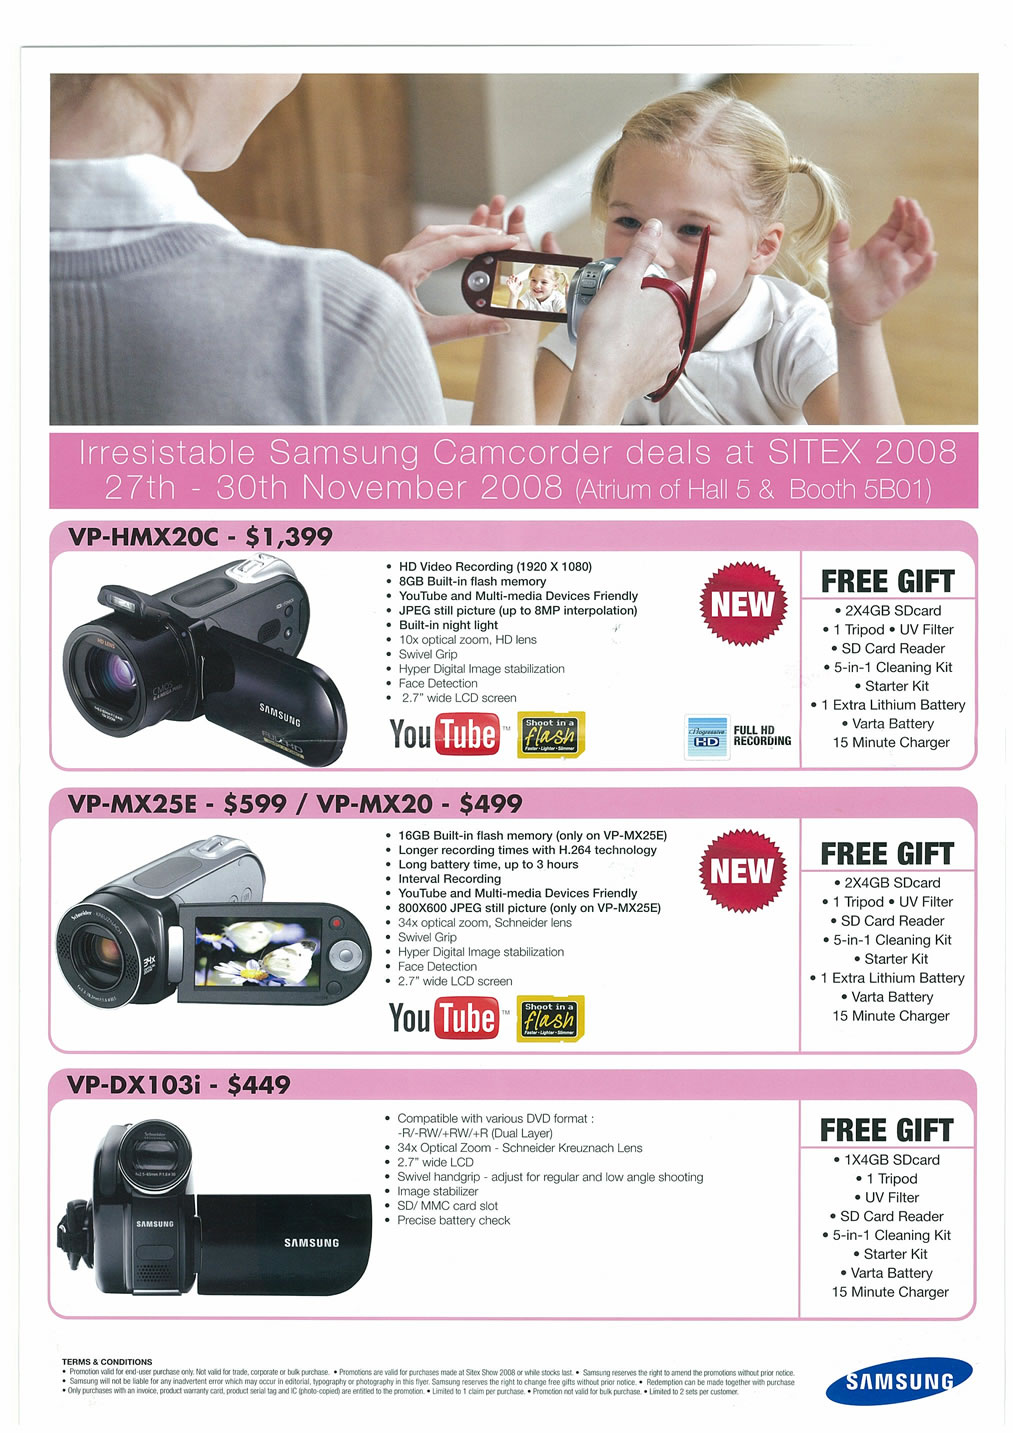 Sitex 2008 price list image brochure of Samsung Cameras Camcorders Page 2 - Vr-zone Tclong